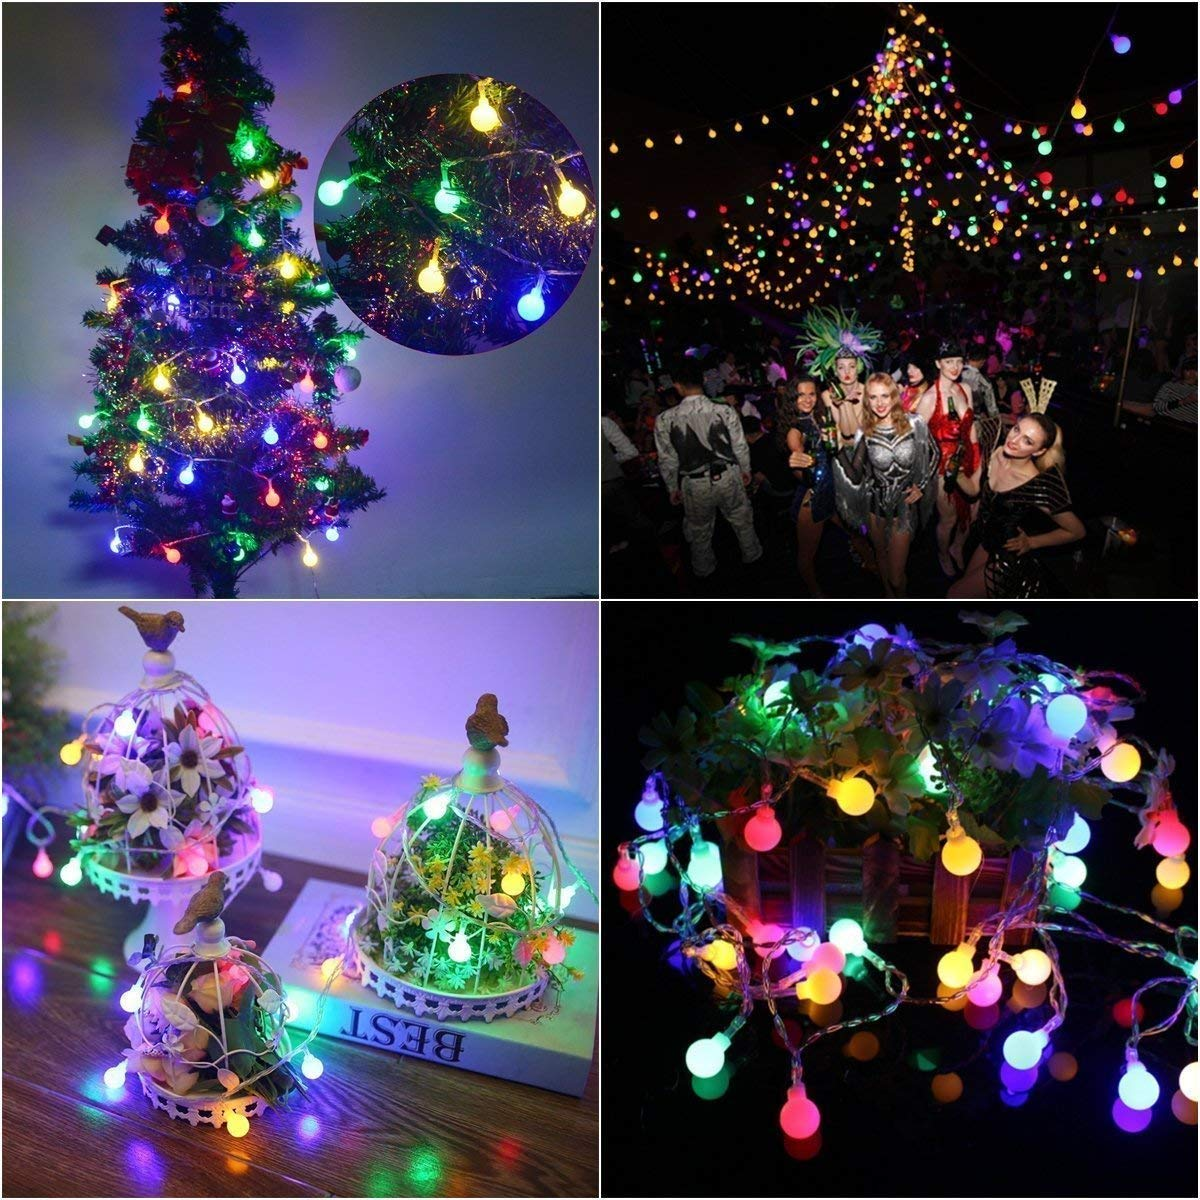 B-right 100 led Globe String Lights with Remote Control Outdoor Waterproof Ball Starry Fairy Lights for Party Fairy Lights Plug in 100led Fairy Lights Plug in Patio Bedroom